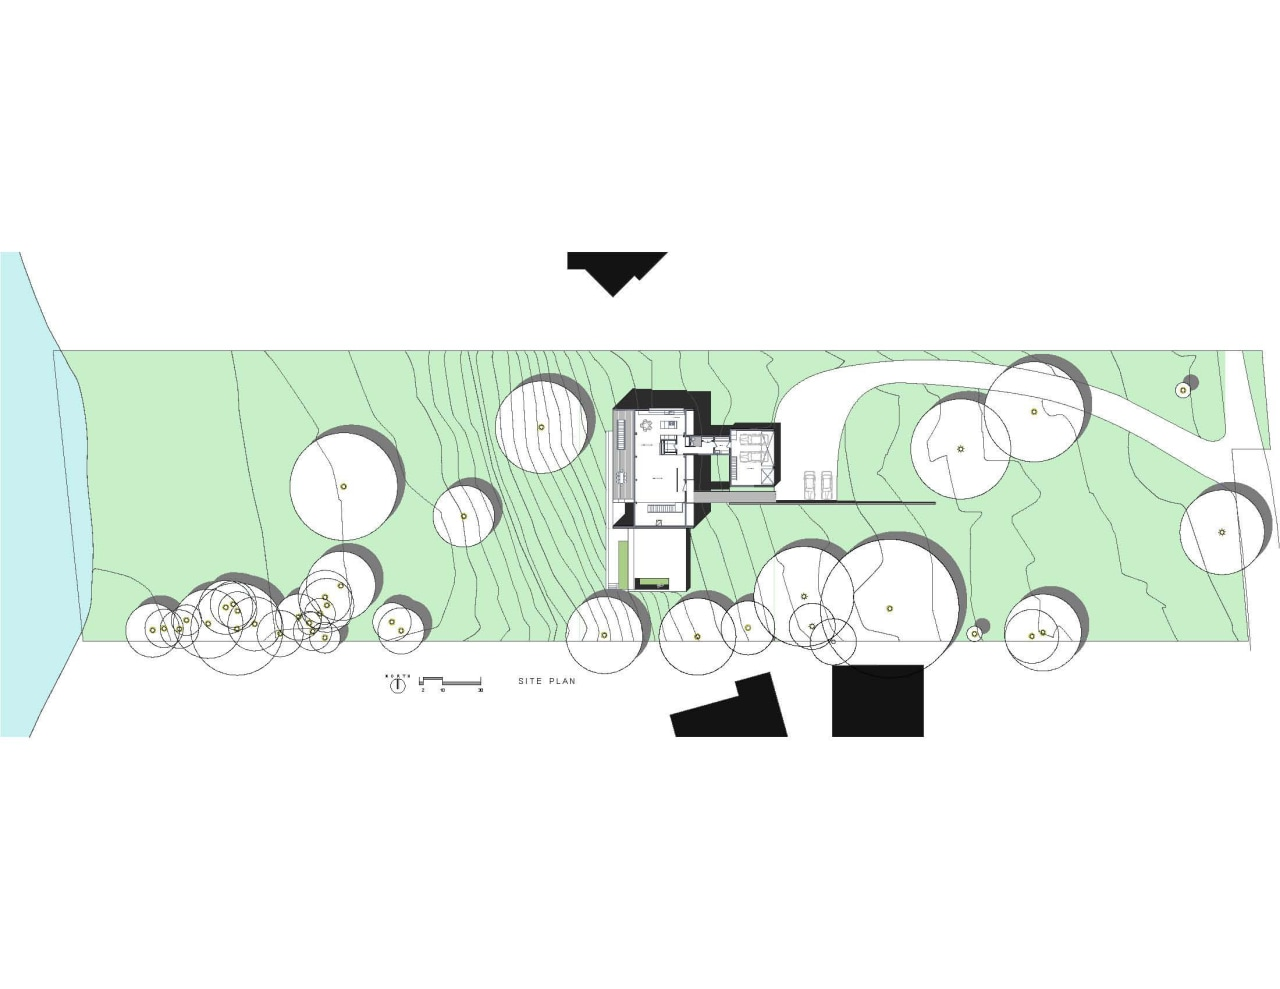 Lay of the land  this house is area, cartoon, design, diagram, font, green, pattern, product, product design, text, white